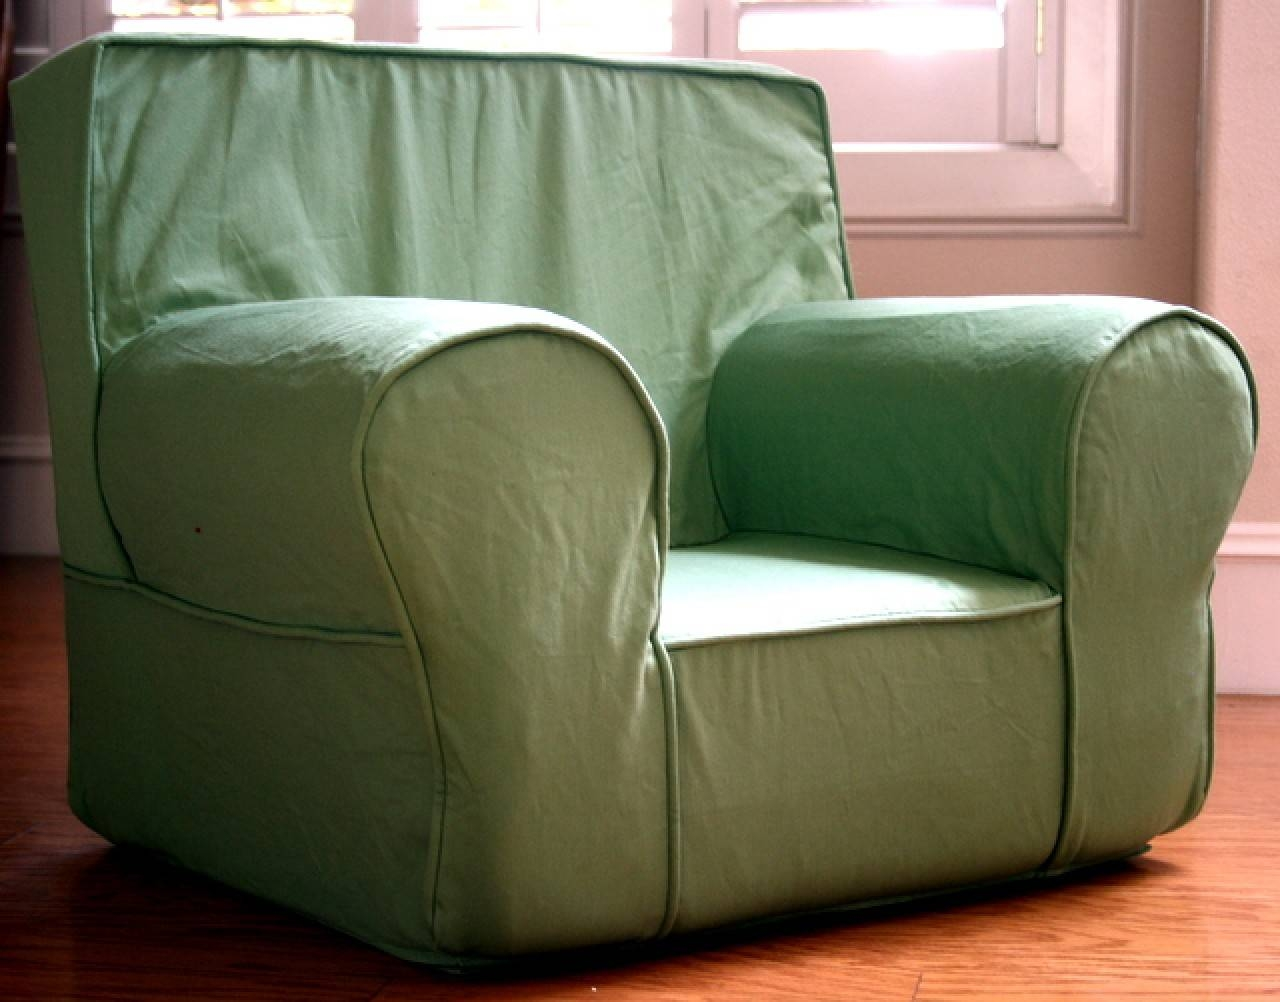 Pottery Barn For Half The Price - Refunk My Junk in Pottery Barn Chair Slipcovers (Image 12 of 15)